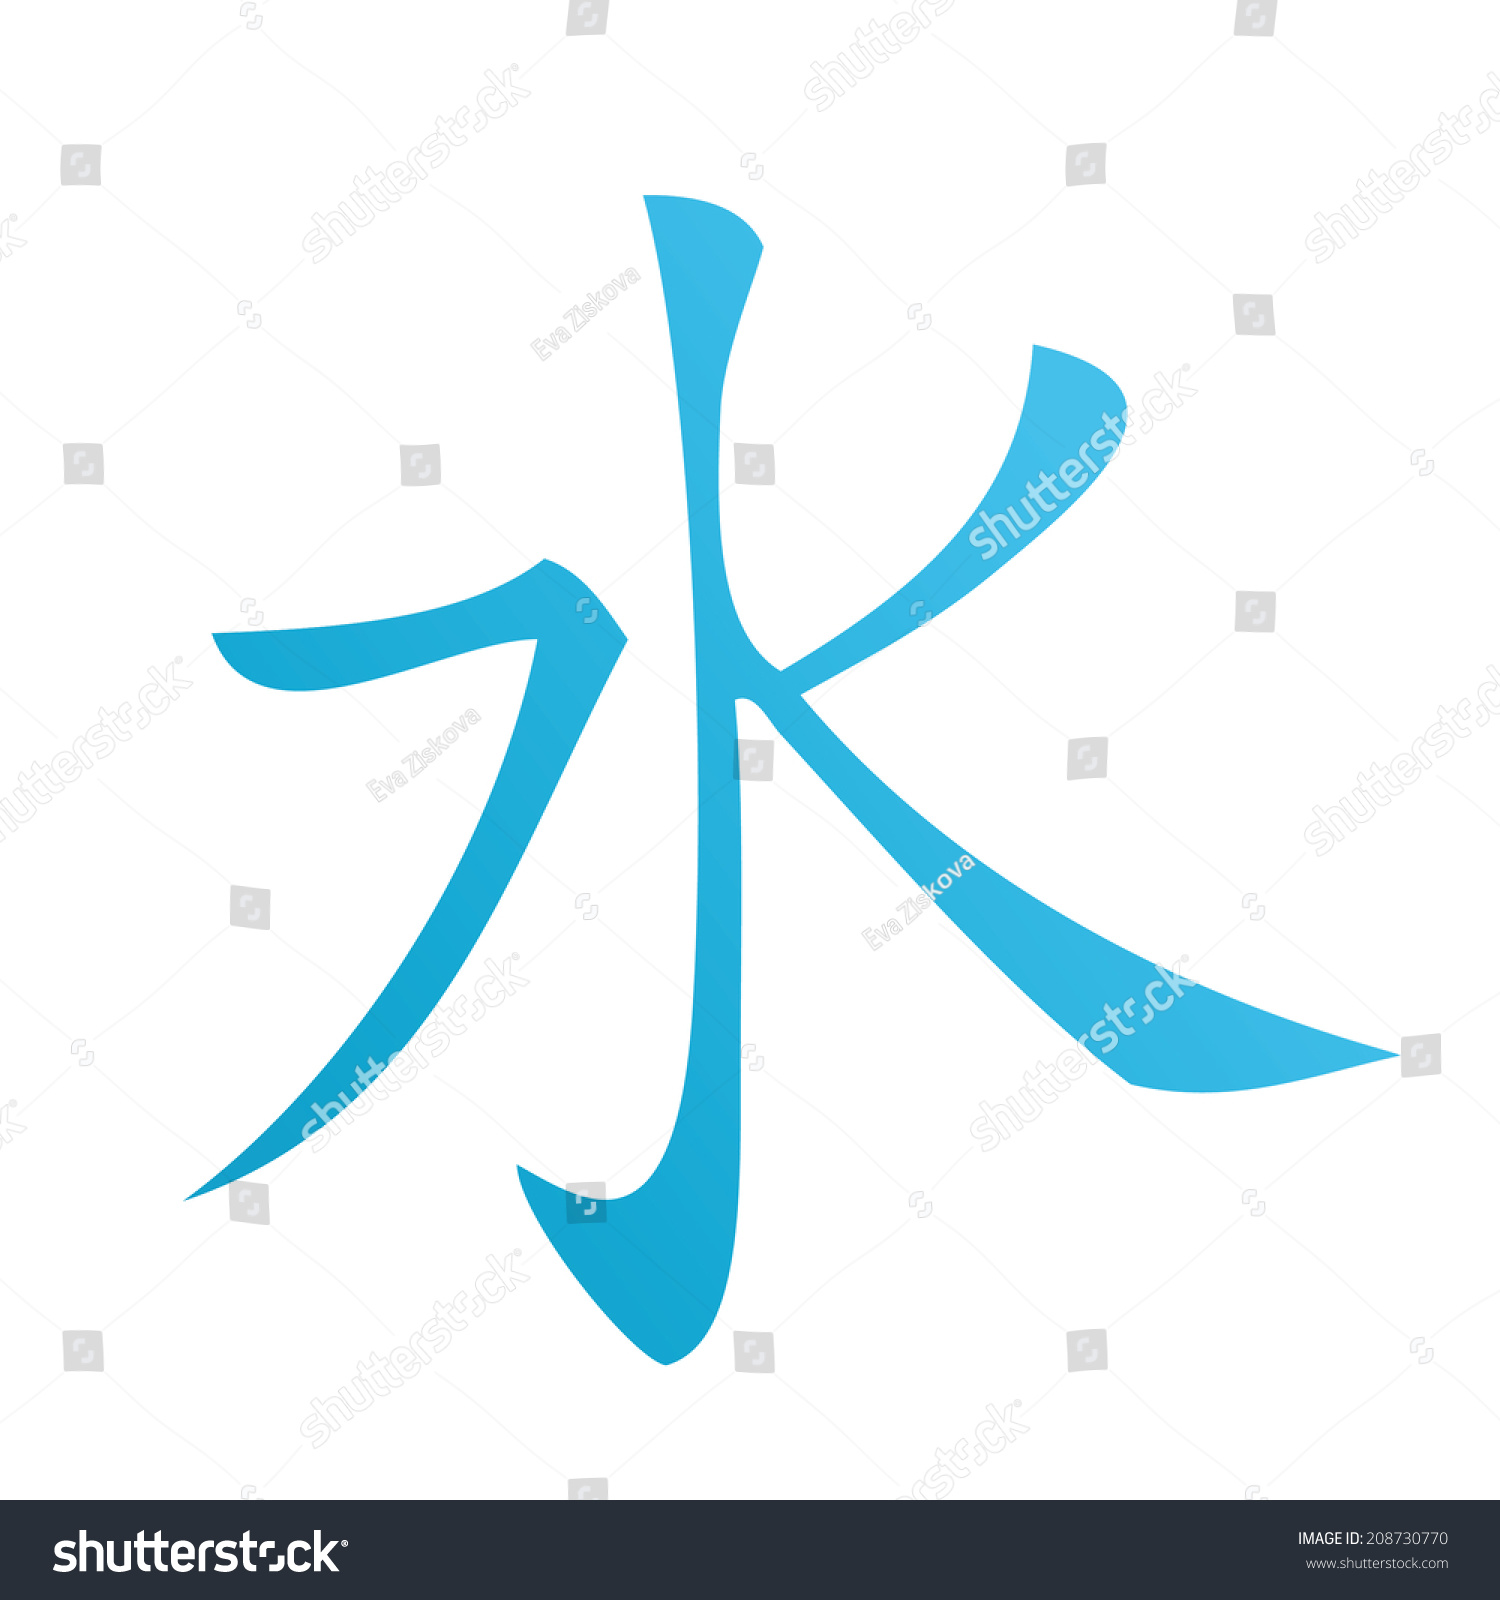 Chinese Calligraphy Water Stock Vector 208730770